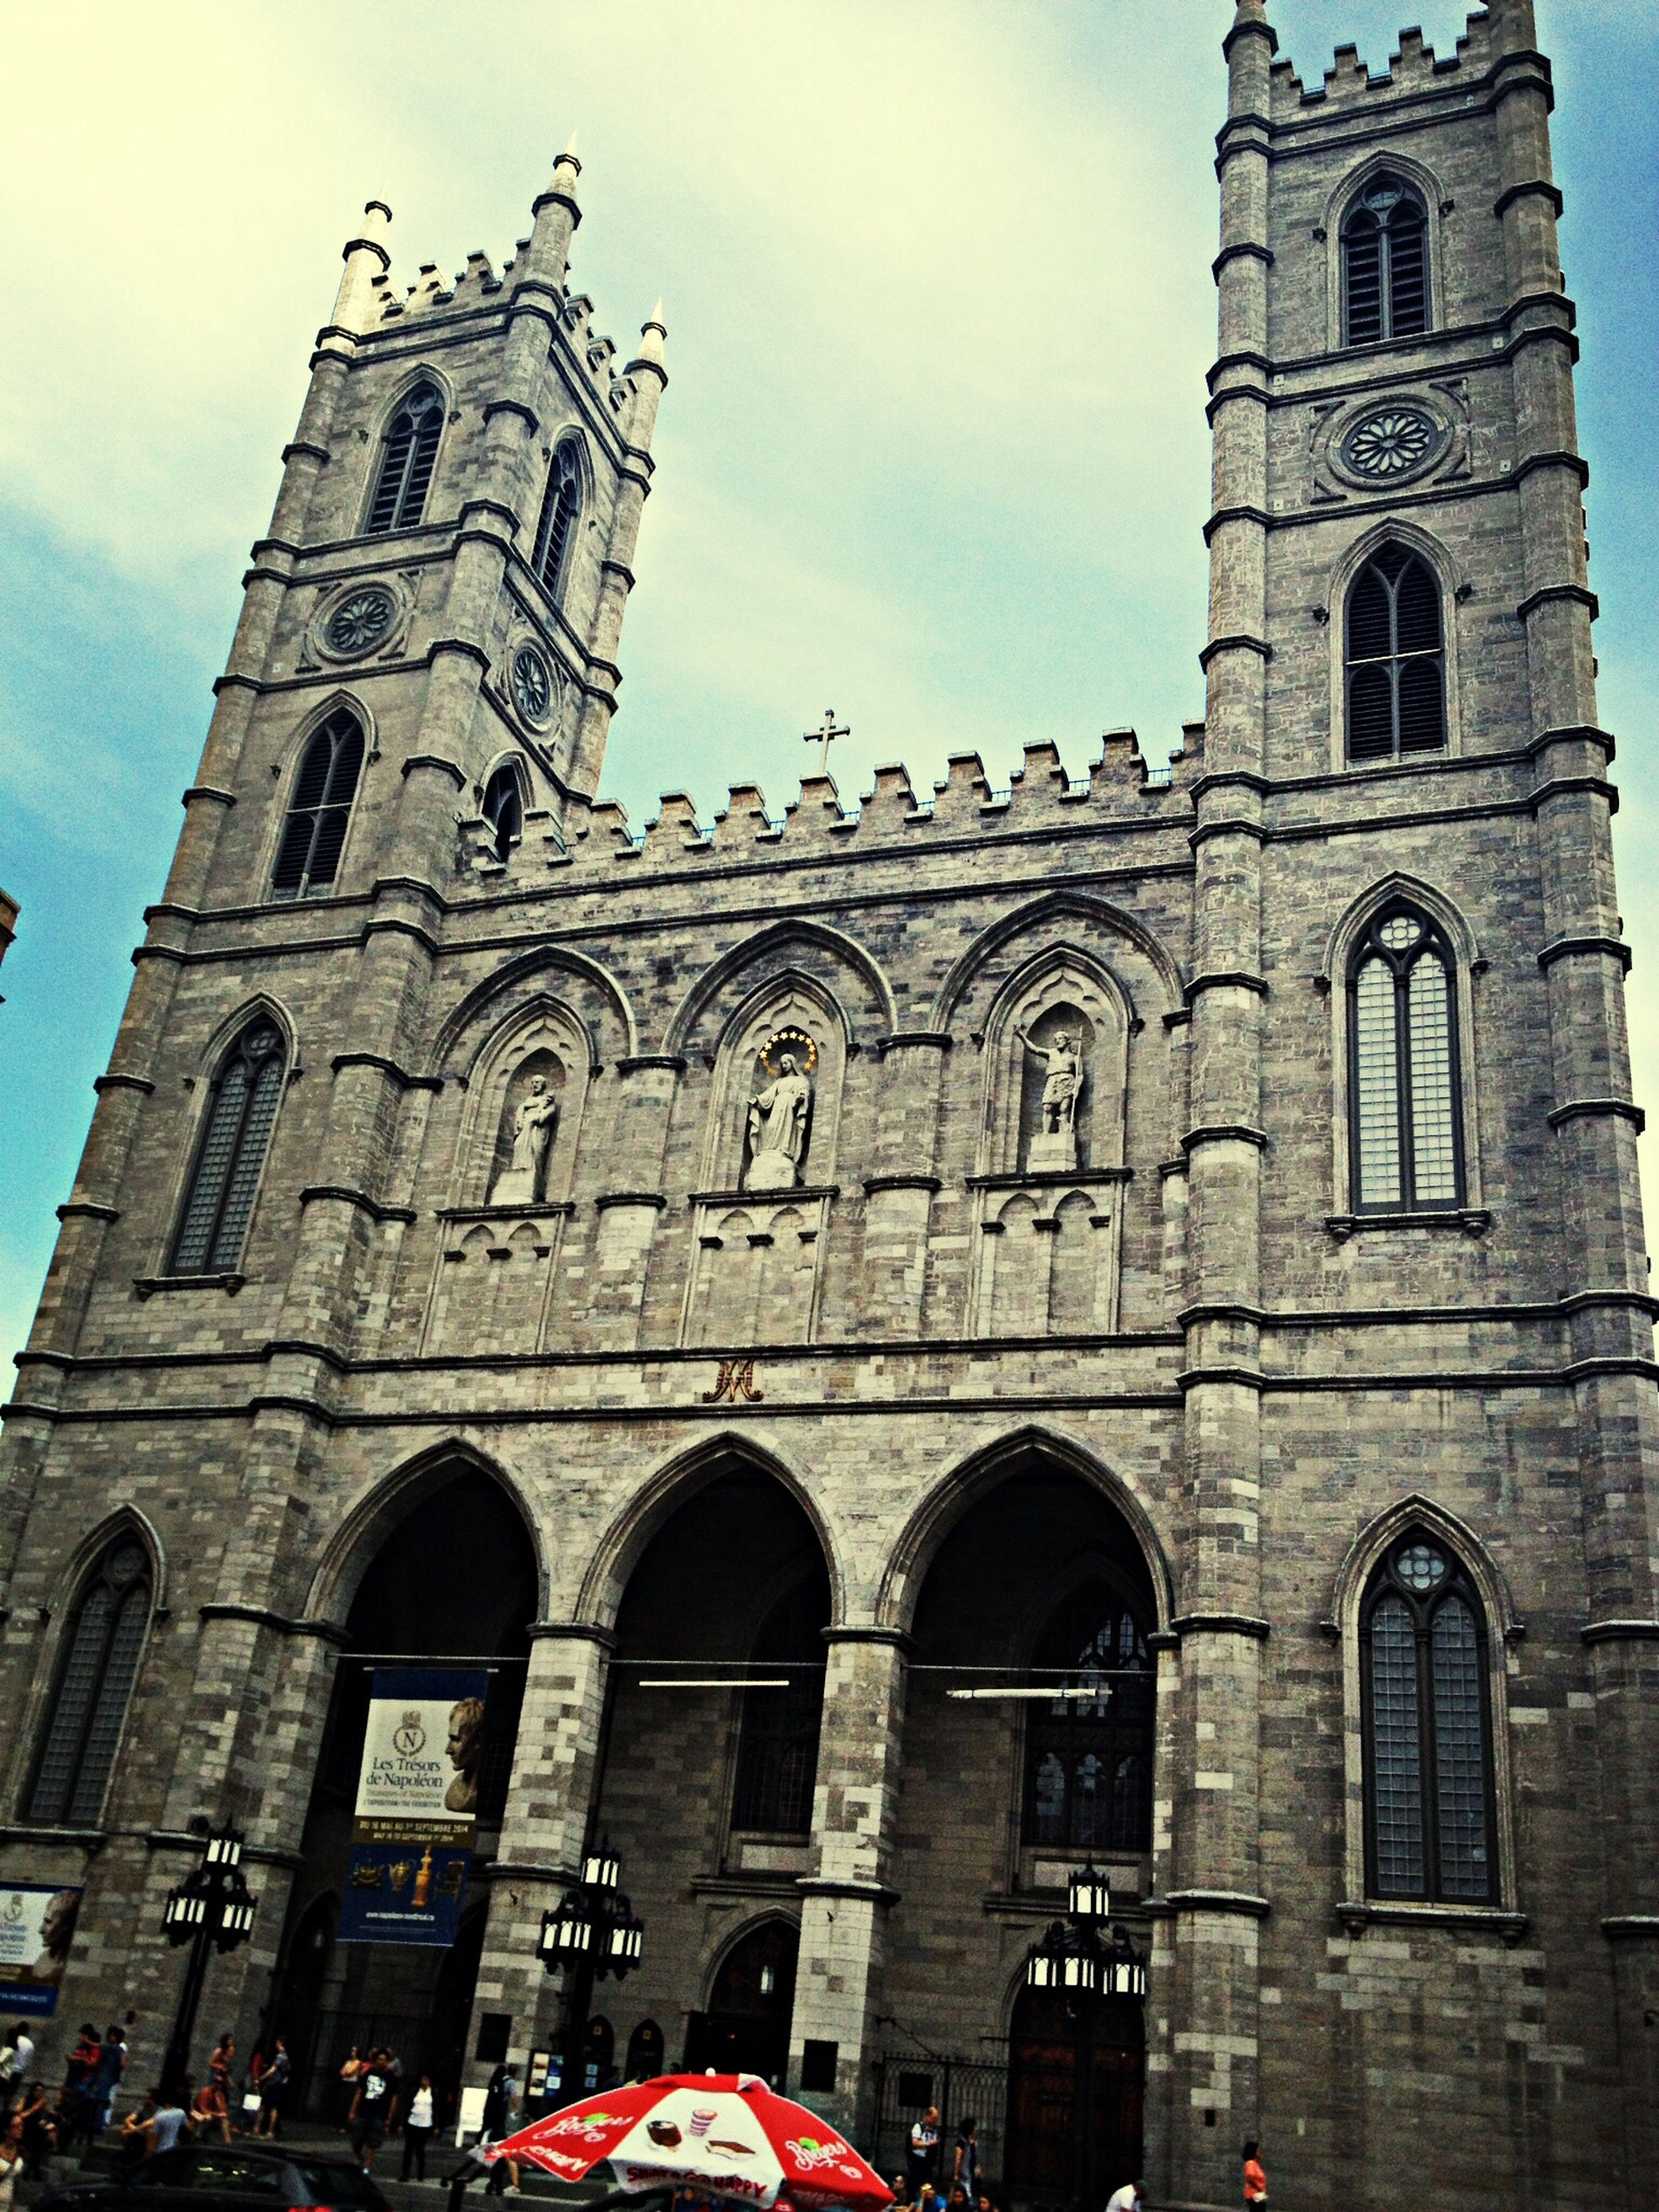 architecture, building exterior, built structure, religion, low angle view, arch, church, place of worship, history, sky, spirituality, travel destinations, cathedral, facade, old, travel, famous place, window